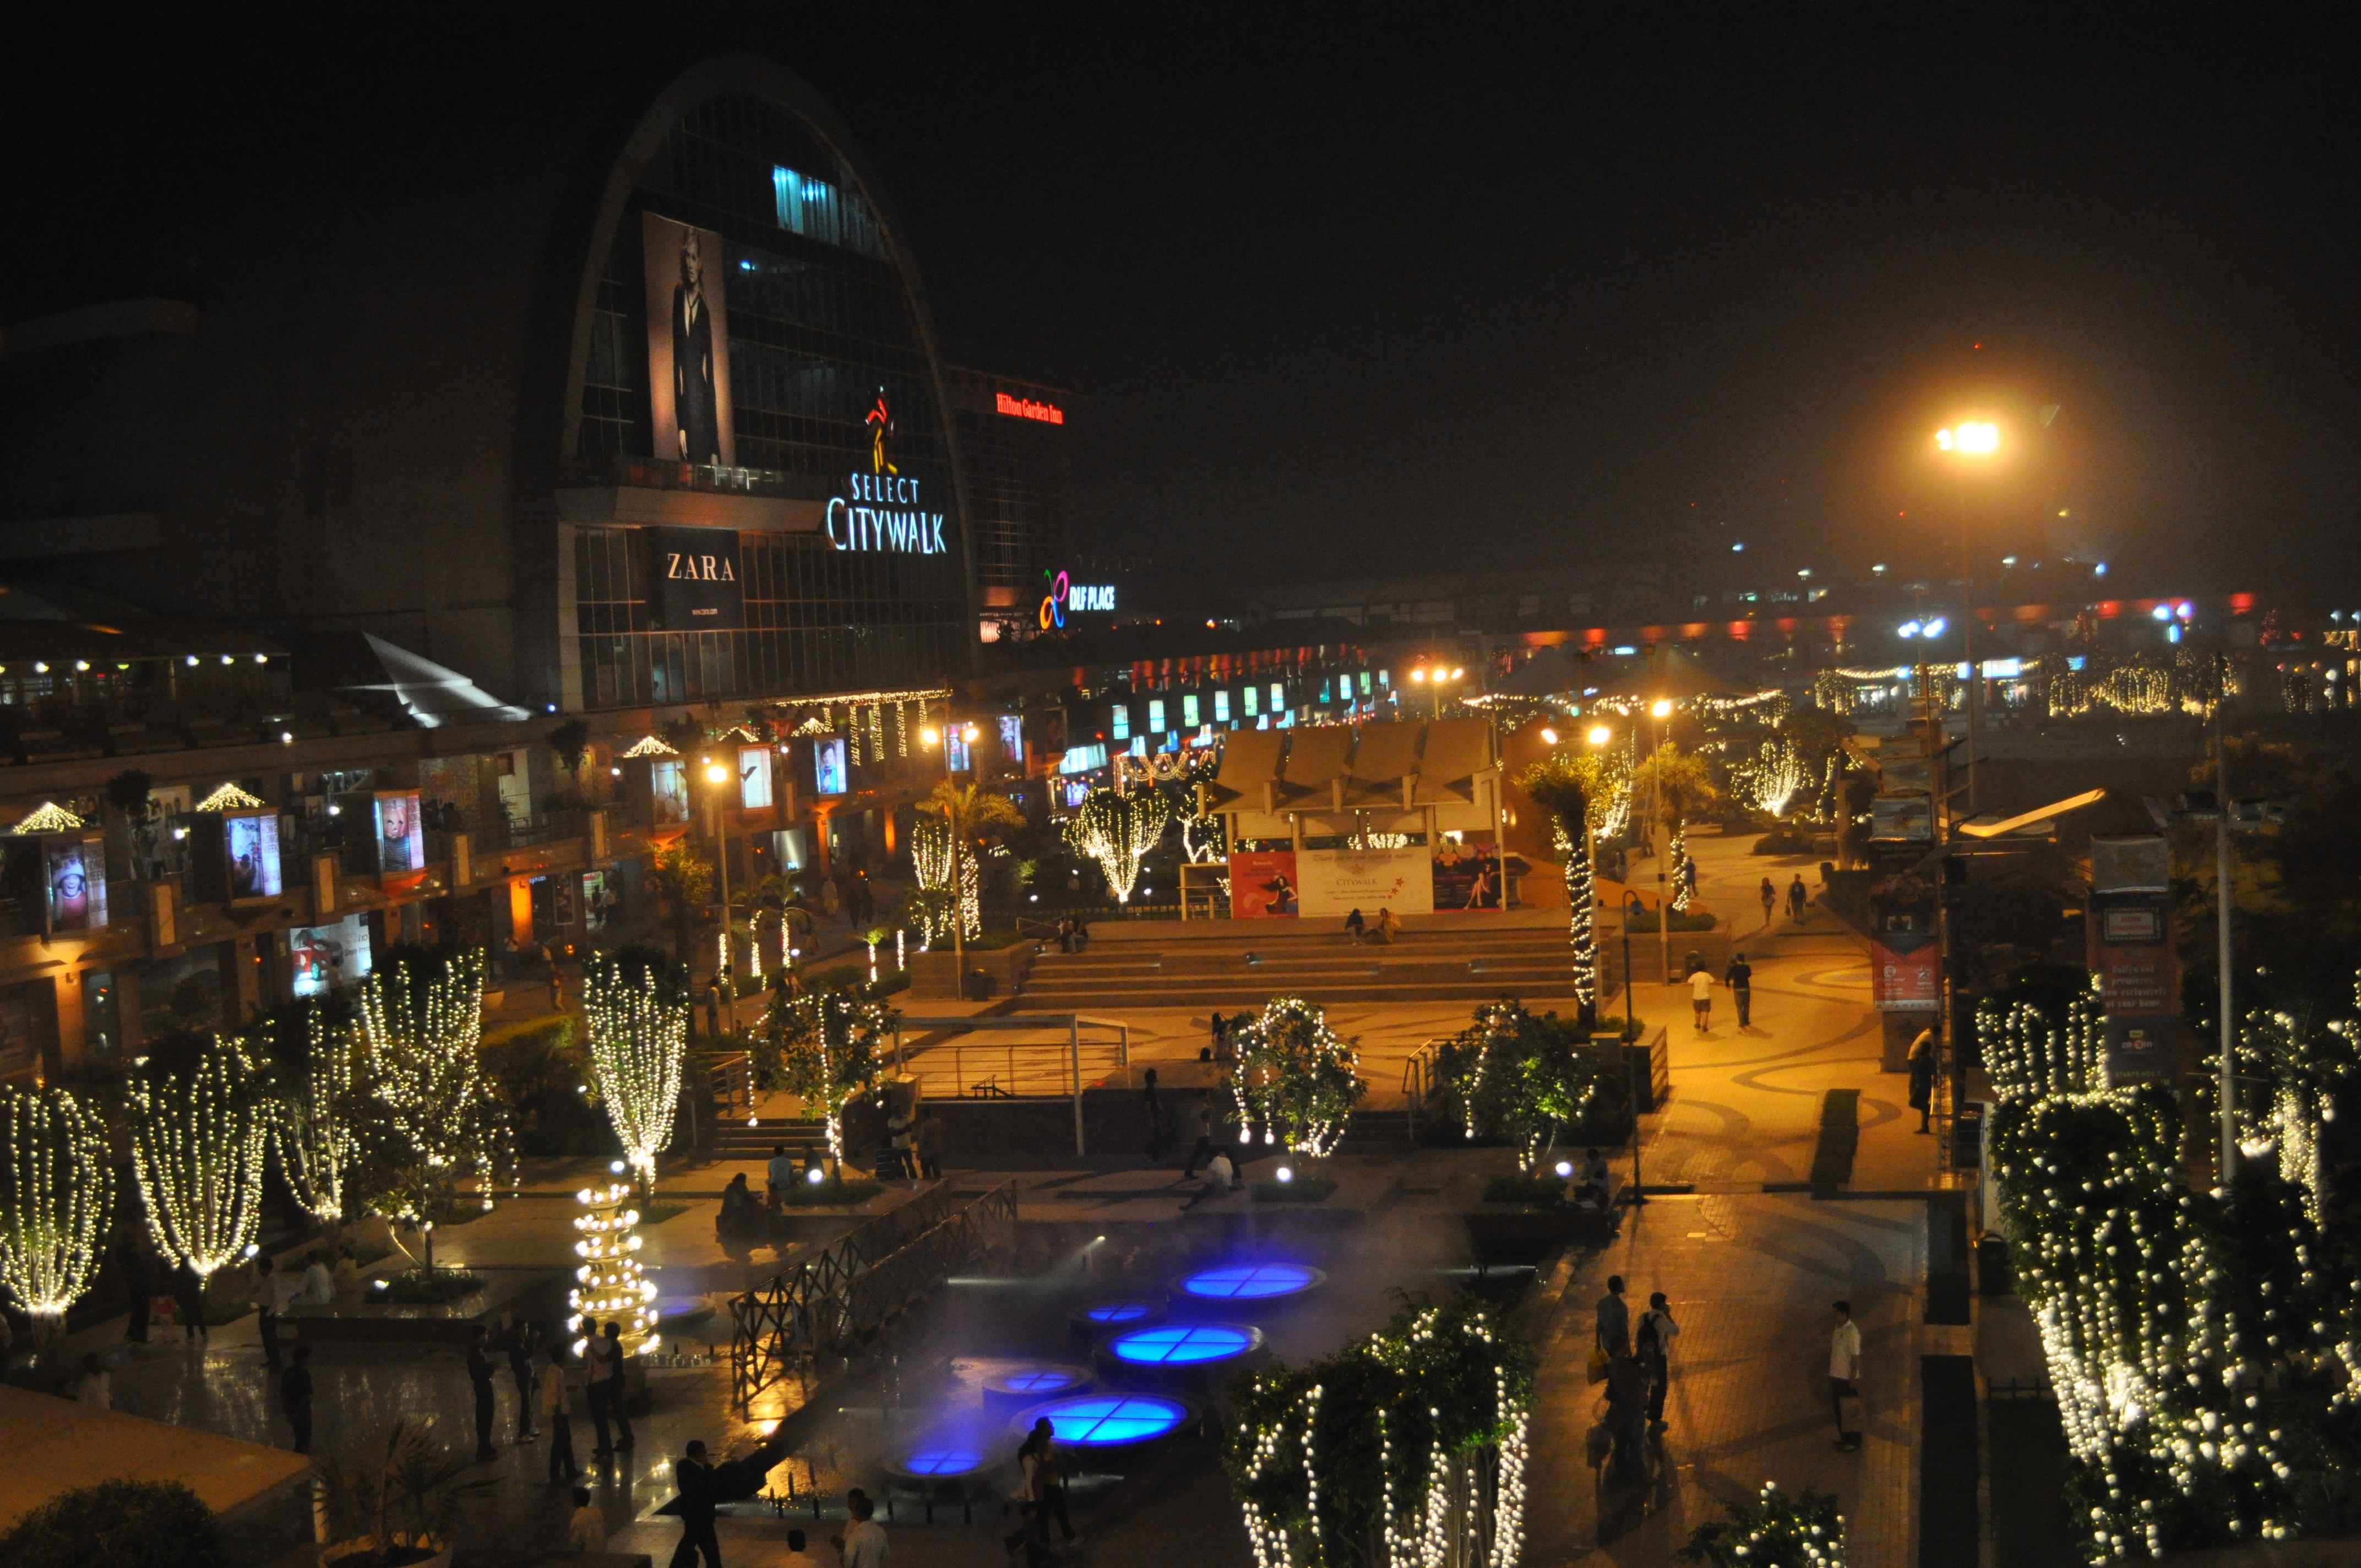 File:Festival of Lights Diwali Retail City Walk in Delhi India lit ...